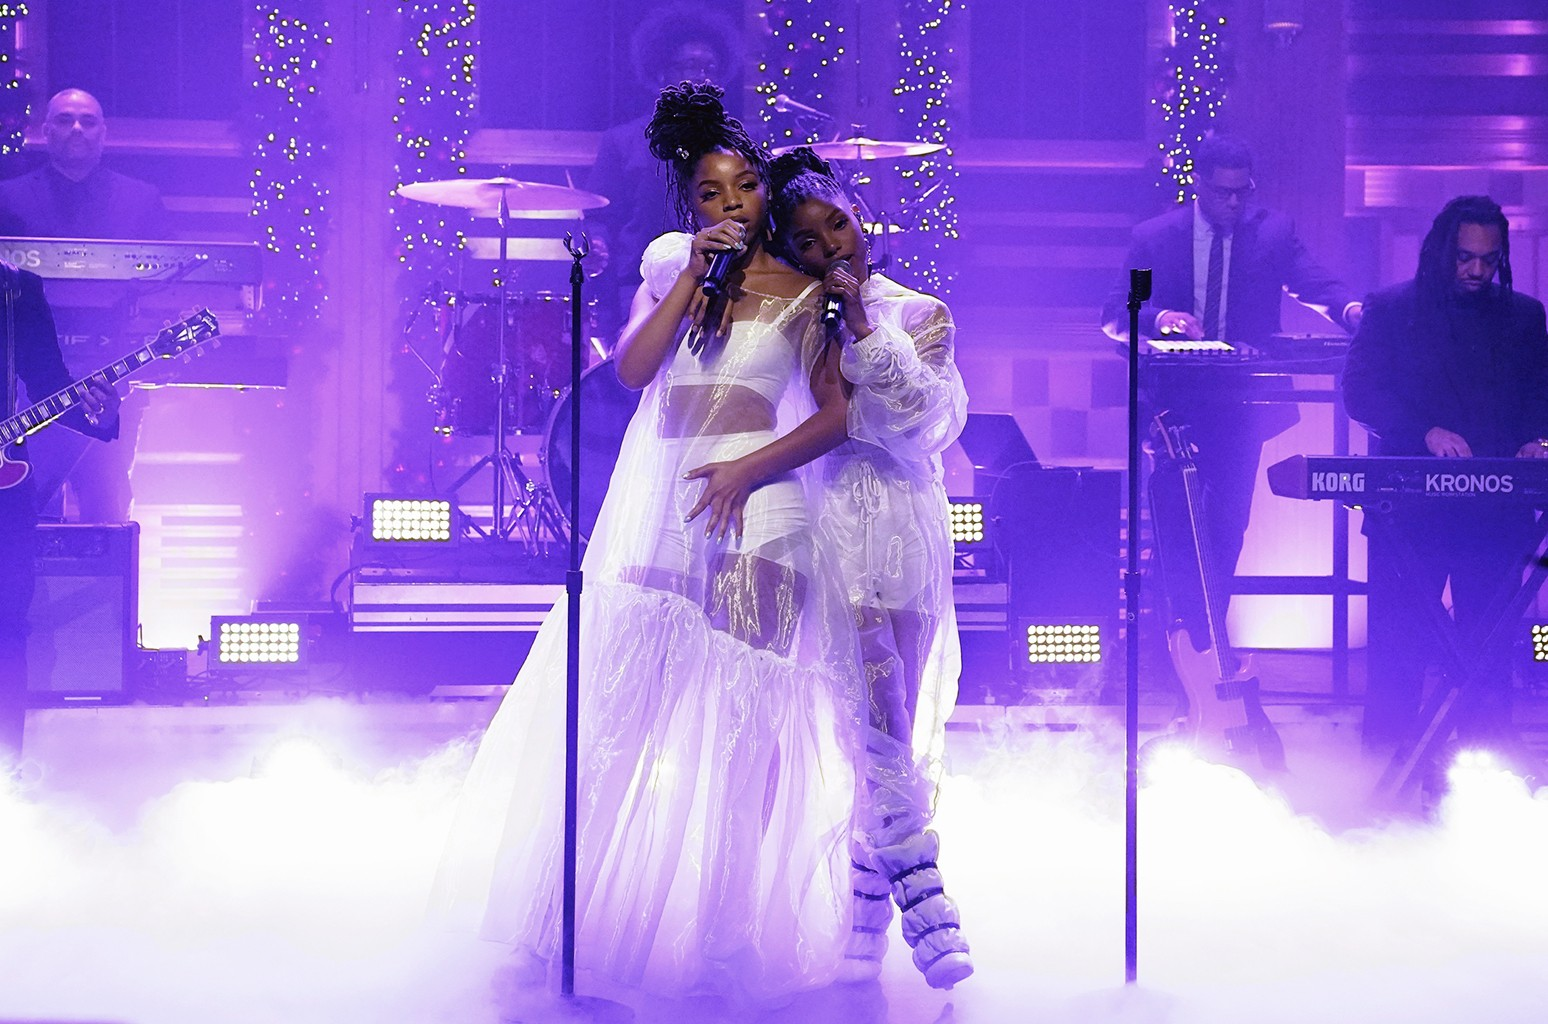 Chloe X Halle performs with The Roots on The Tonight Show Starring Jimmy Fallon on Dec. 13, 2018.